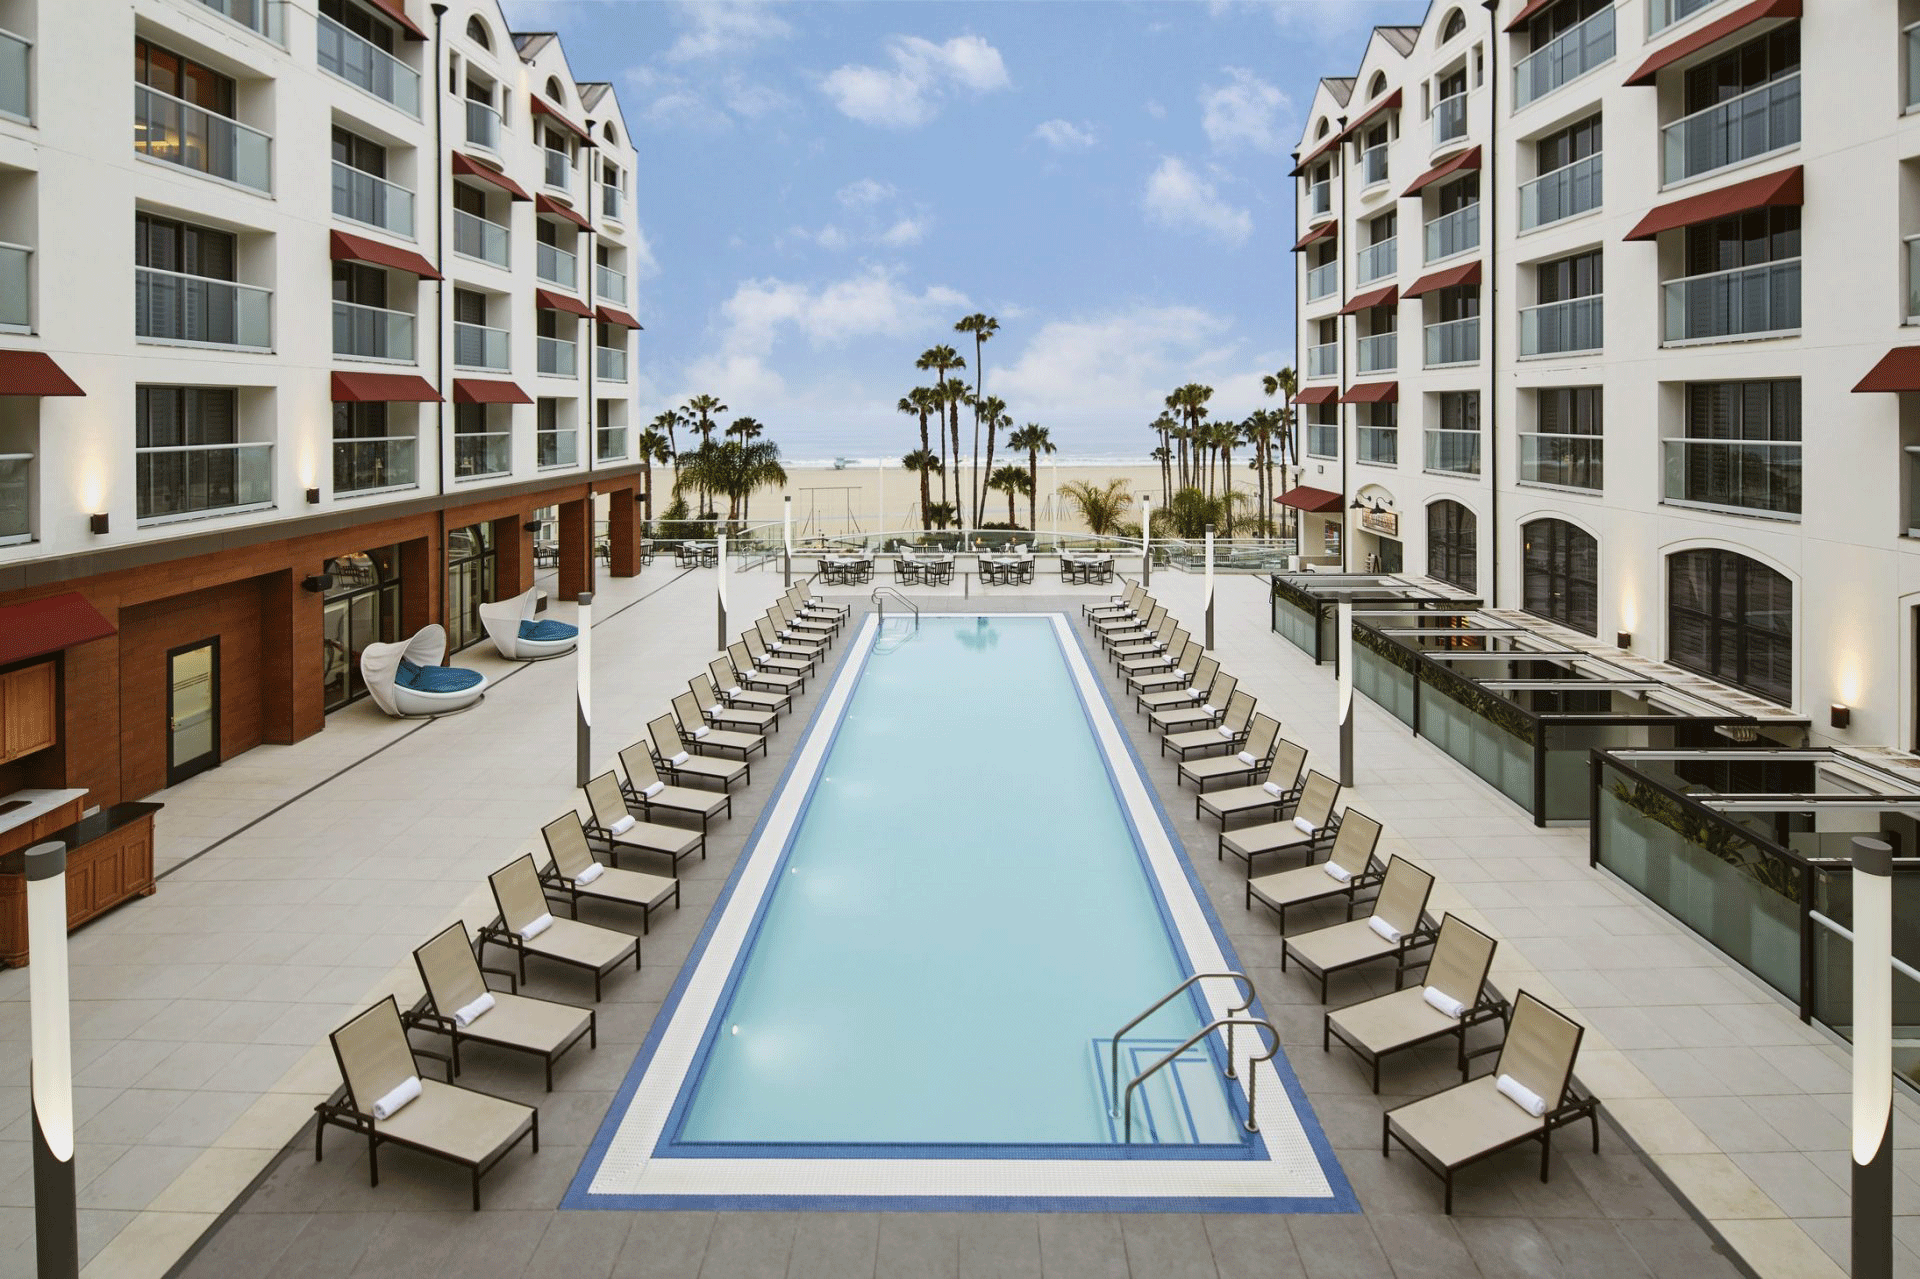 The pool at the Loews Santa Monica.